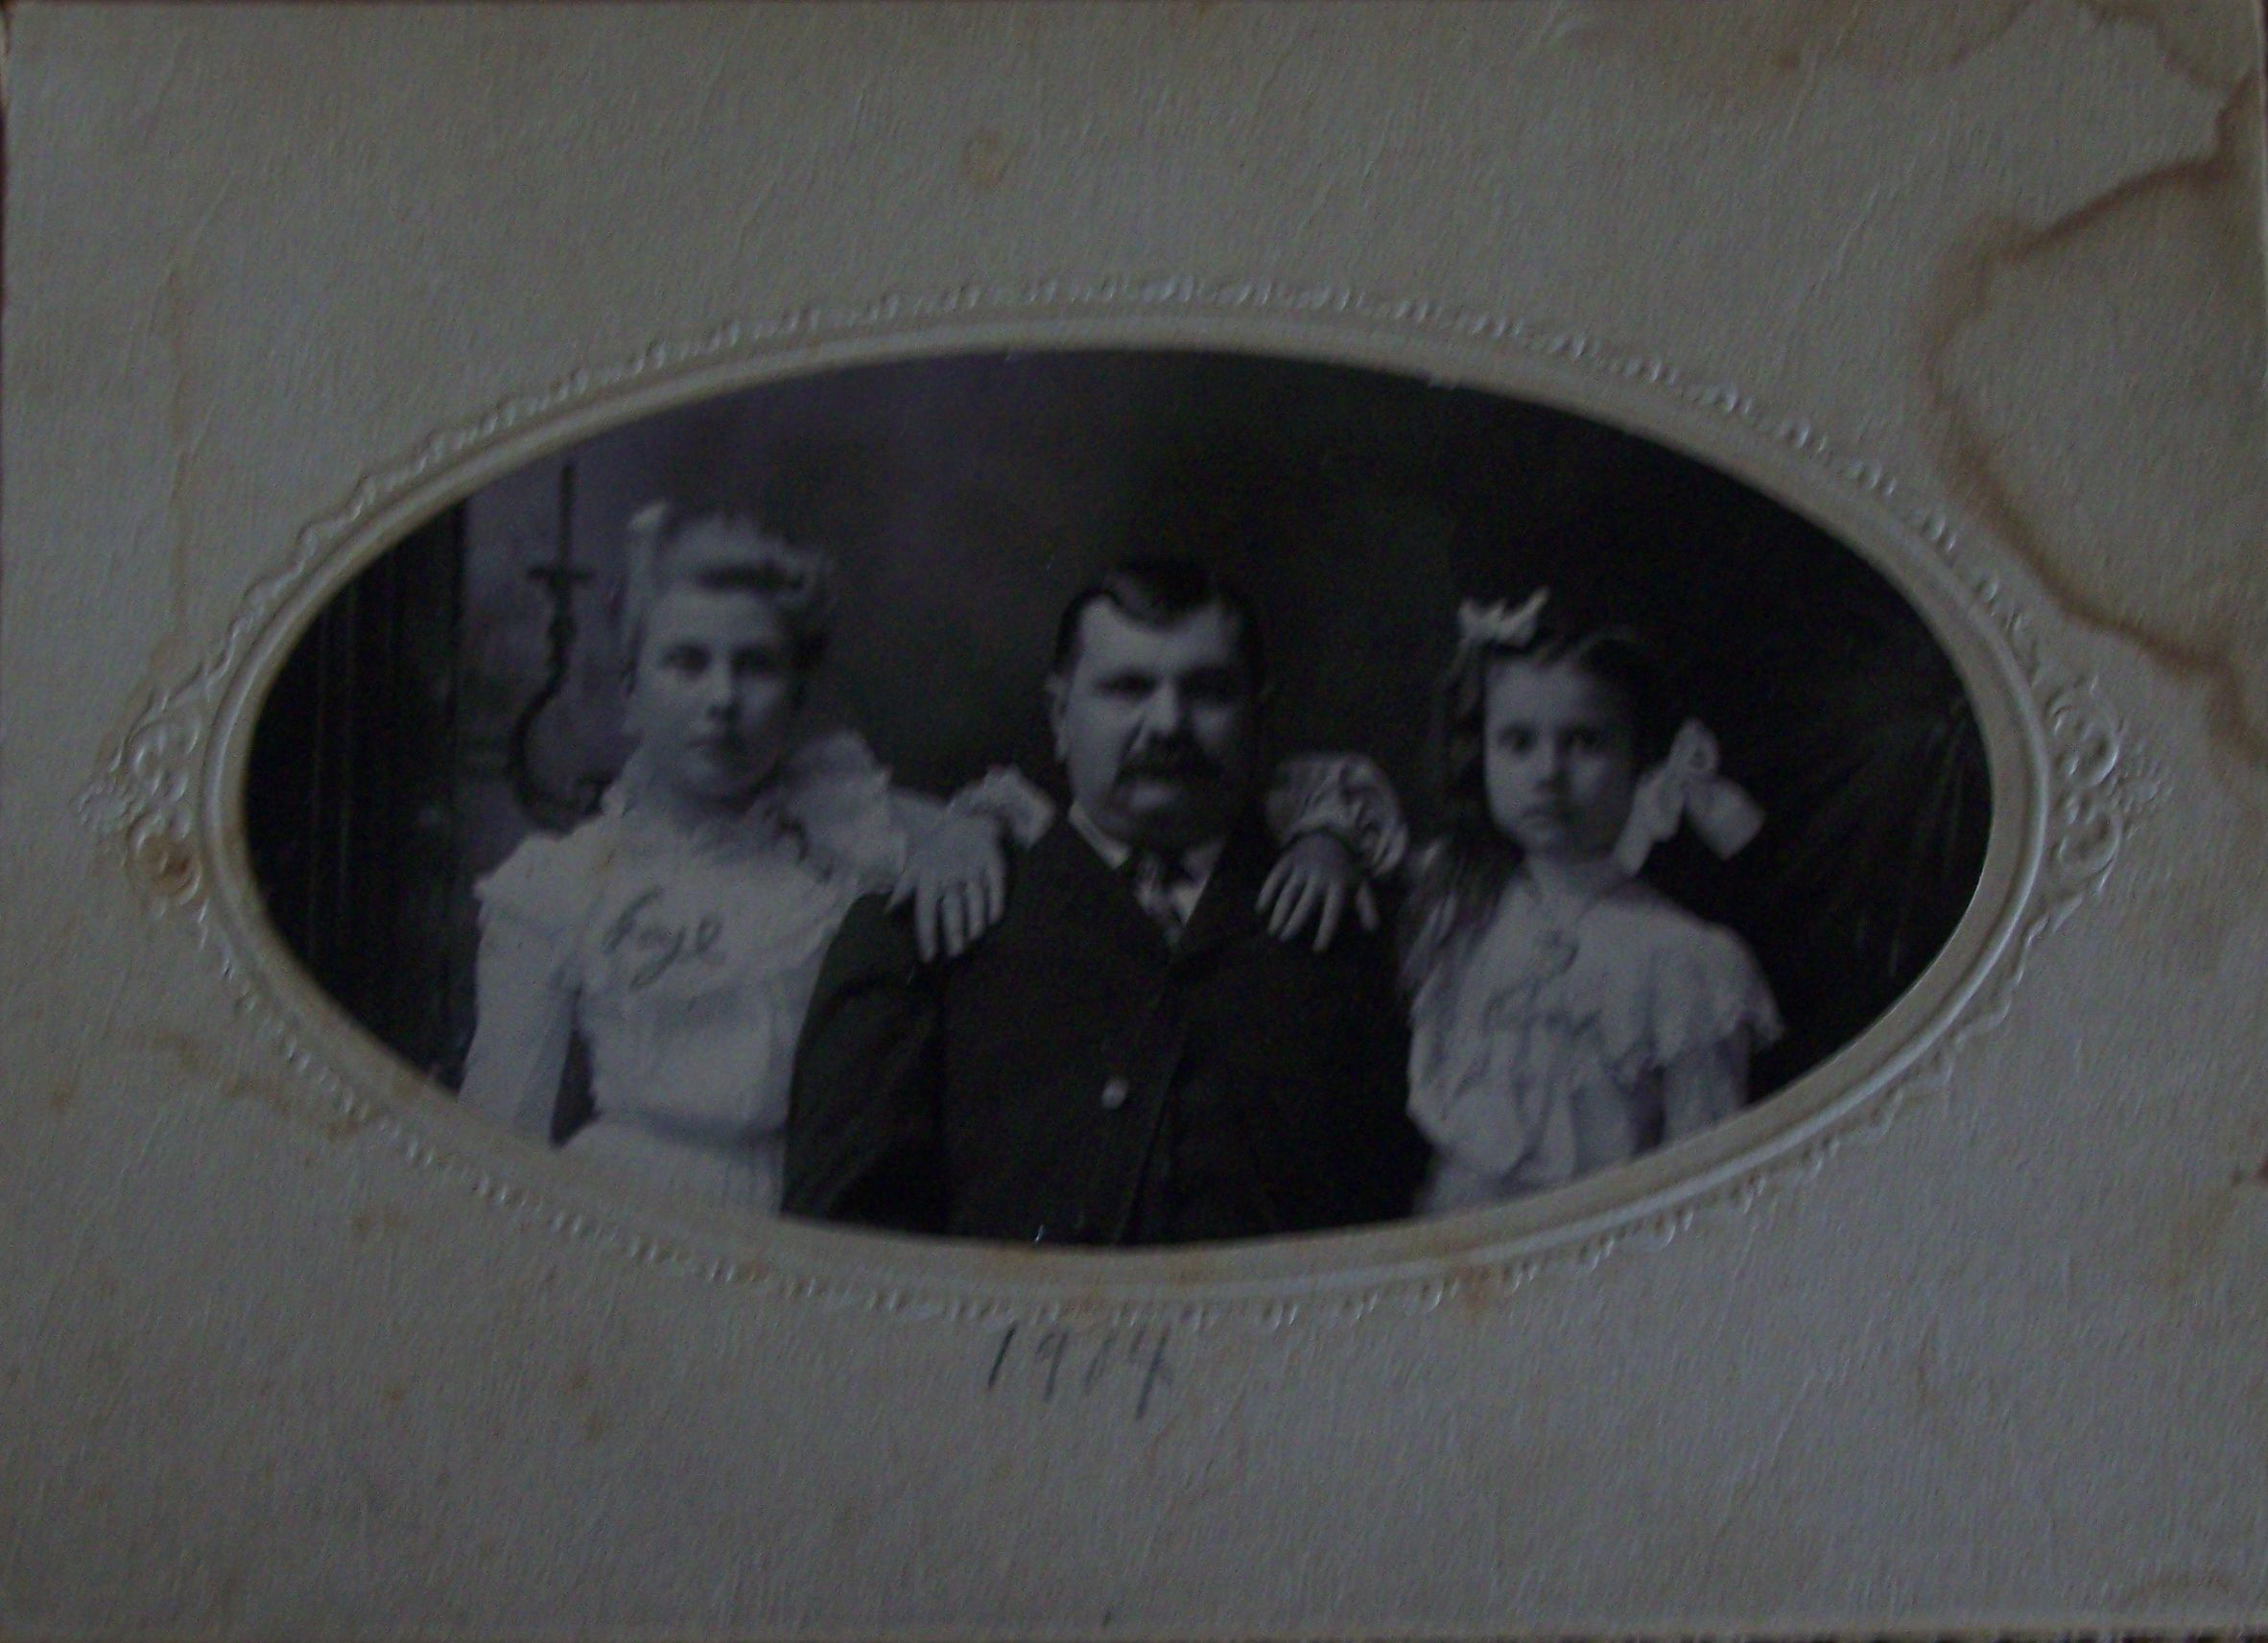 Portrait of Fay (12), Henry (father), and Ona (8) Fritz, dated 20 June 1904